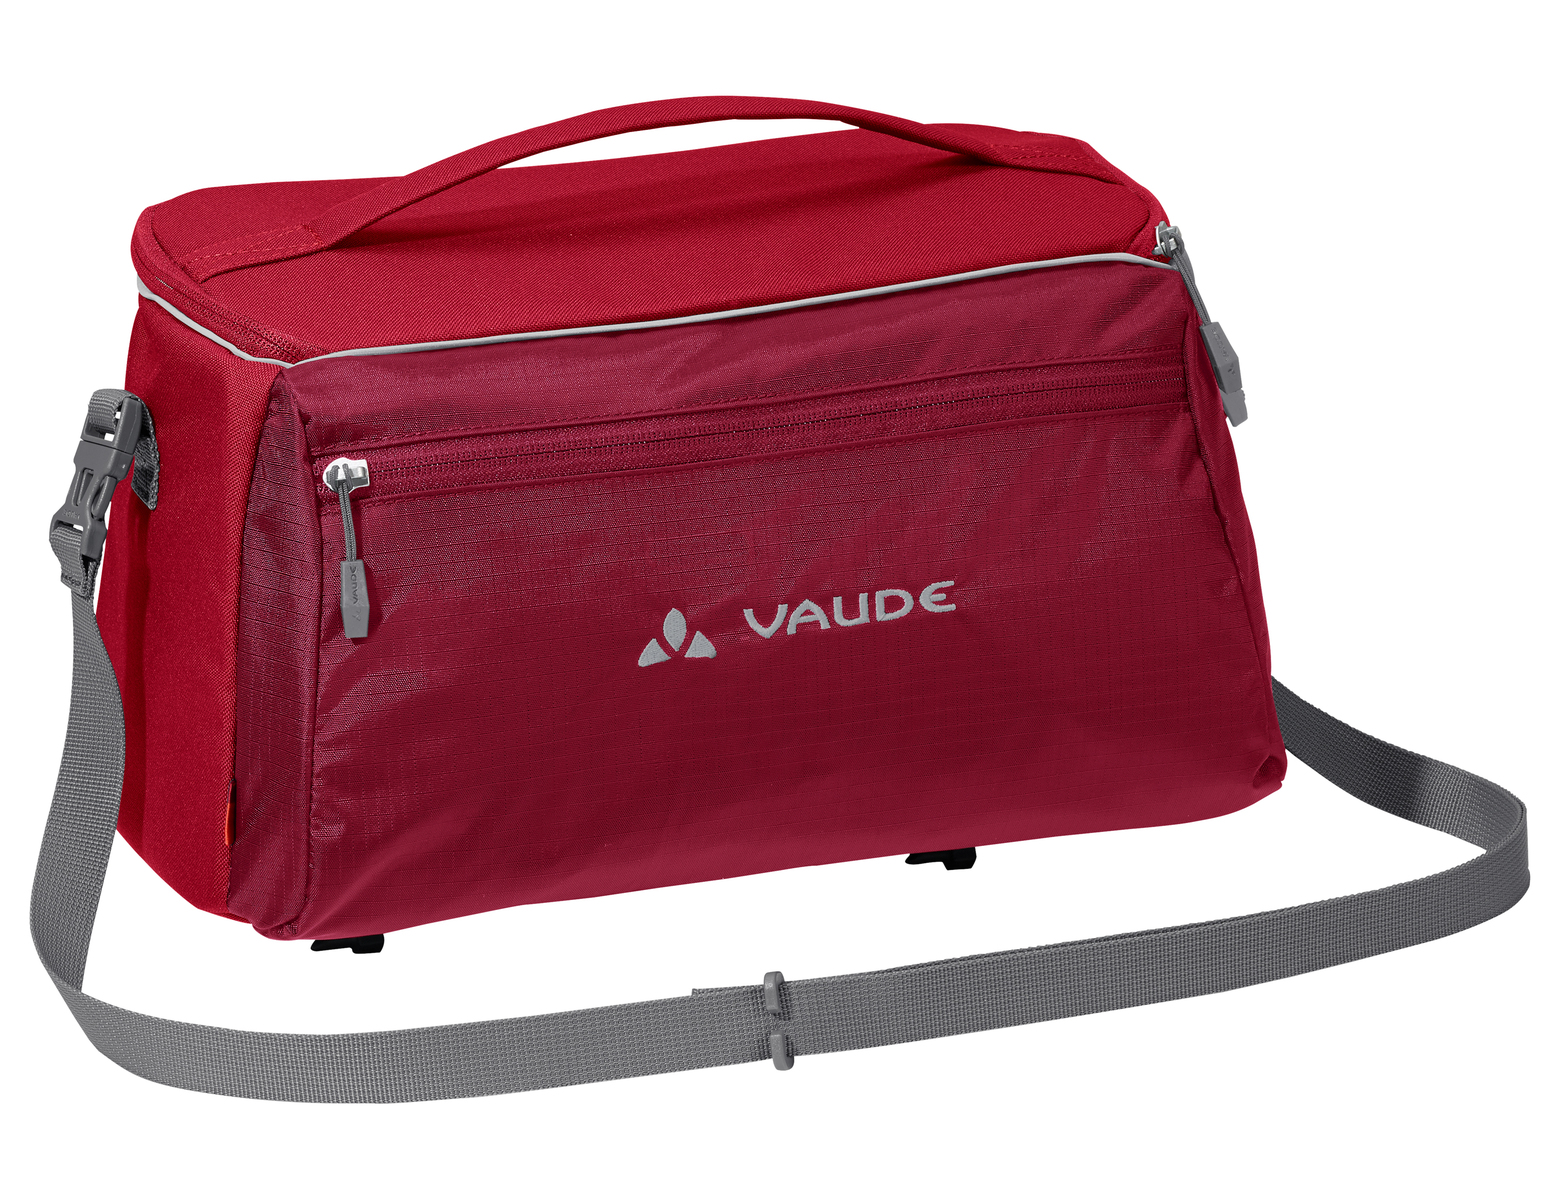 VAUDE Road Master Shopper salsa  - VAUDE Road Master Shopper salsa